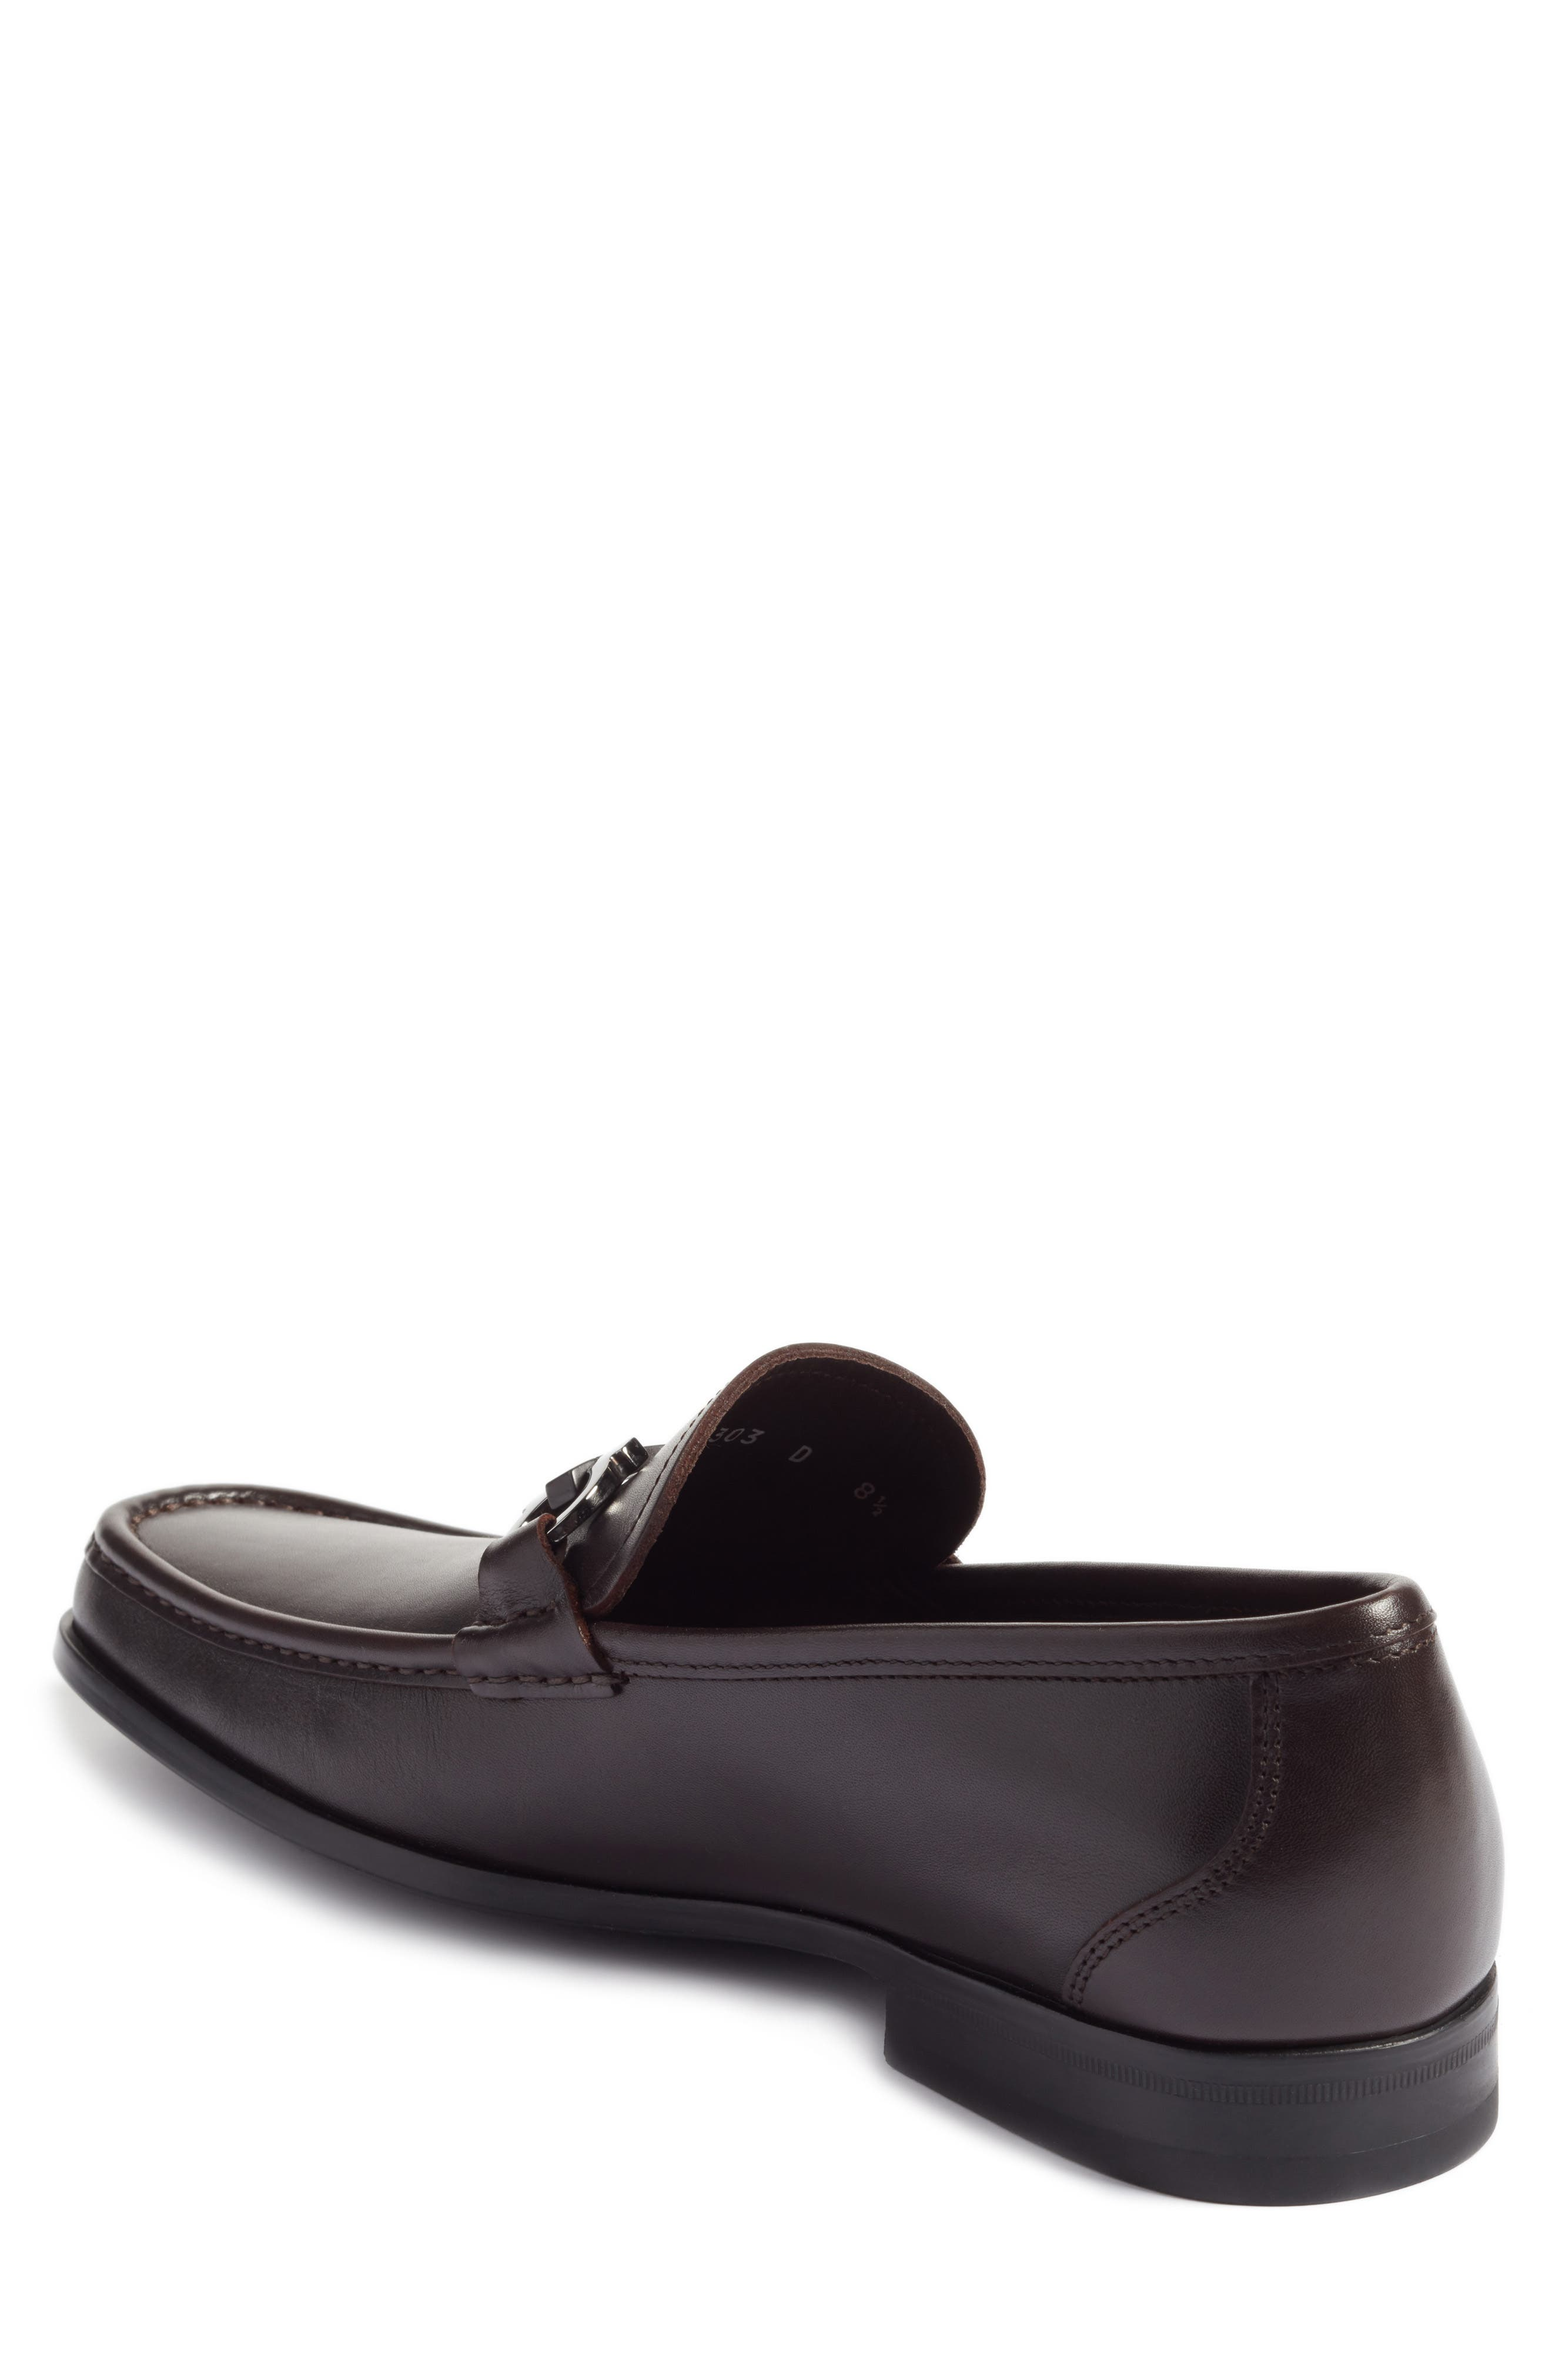 Alternate Image 2  - Salvatore Ferragamo Grandioso Bit Loafer (Men)